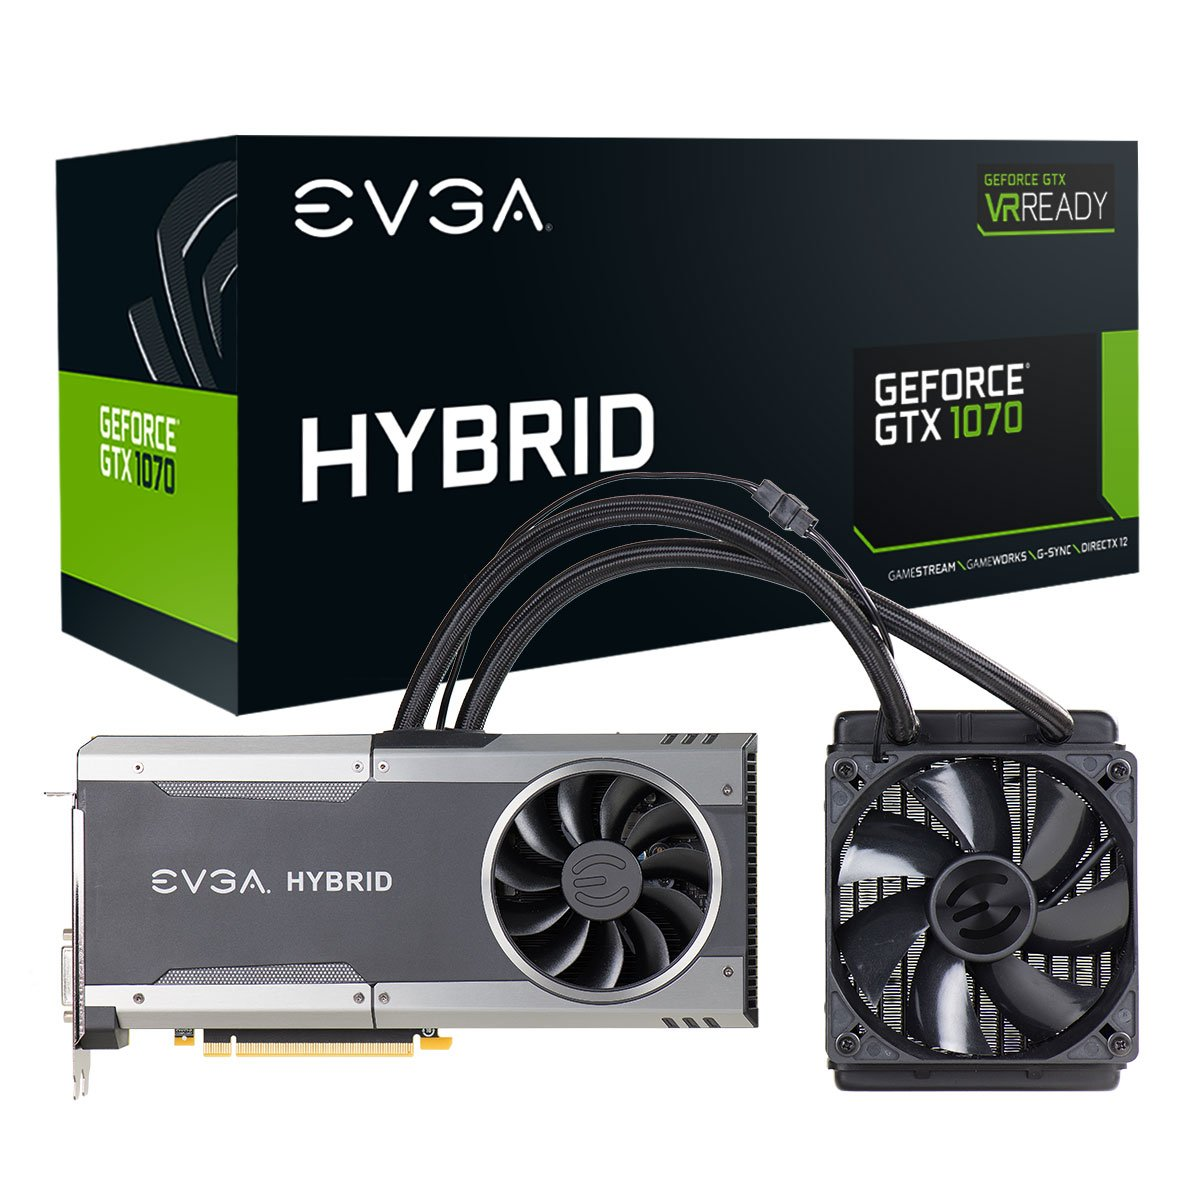 Amazon.com: EVGA GeForce GTX 1070 FTW HYBRID GAMING, 8GB GDDR5, RGB LED,  All-In-One Watercooling with 10CM FAN, 10 Power Phases, Double BIOS, ...